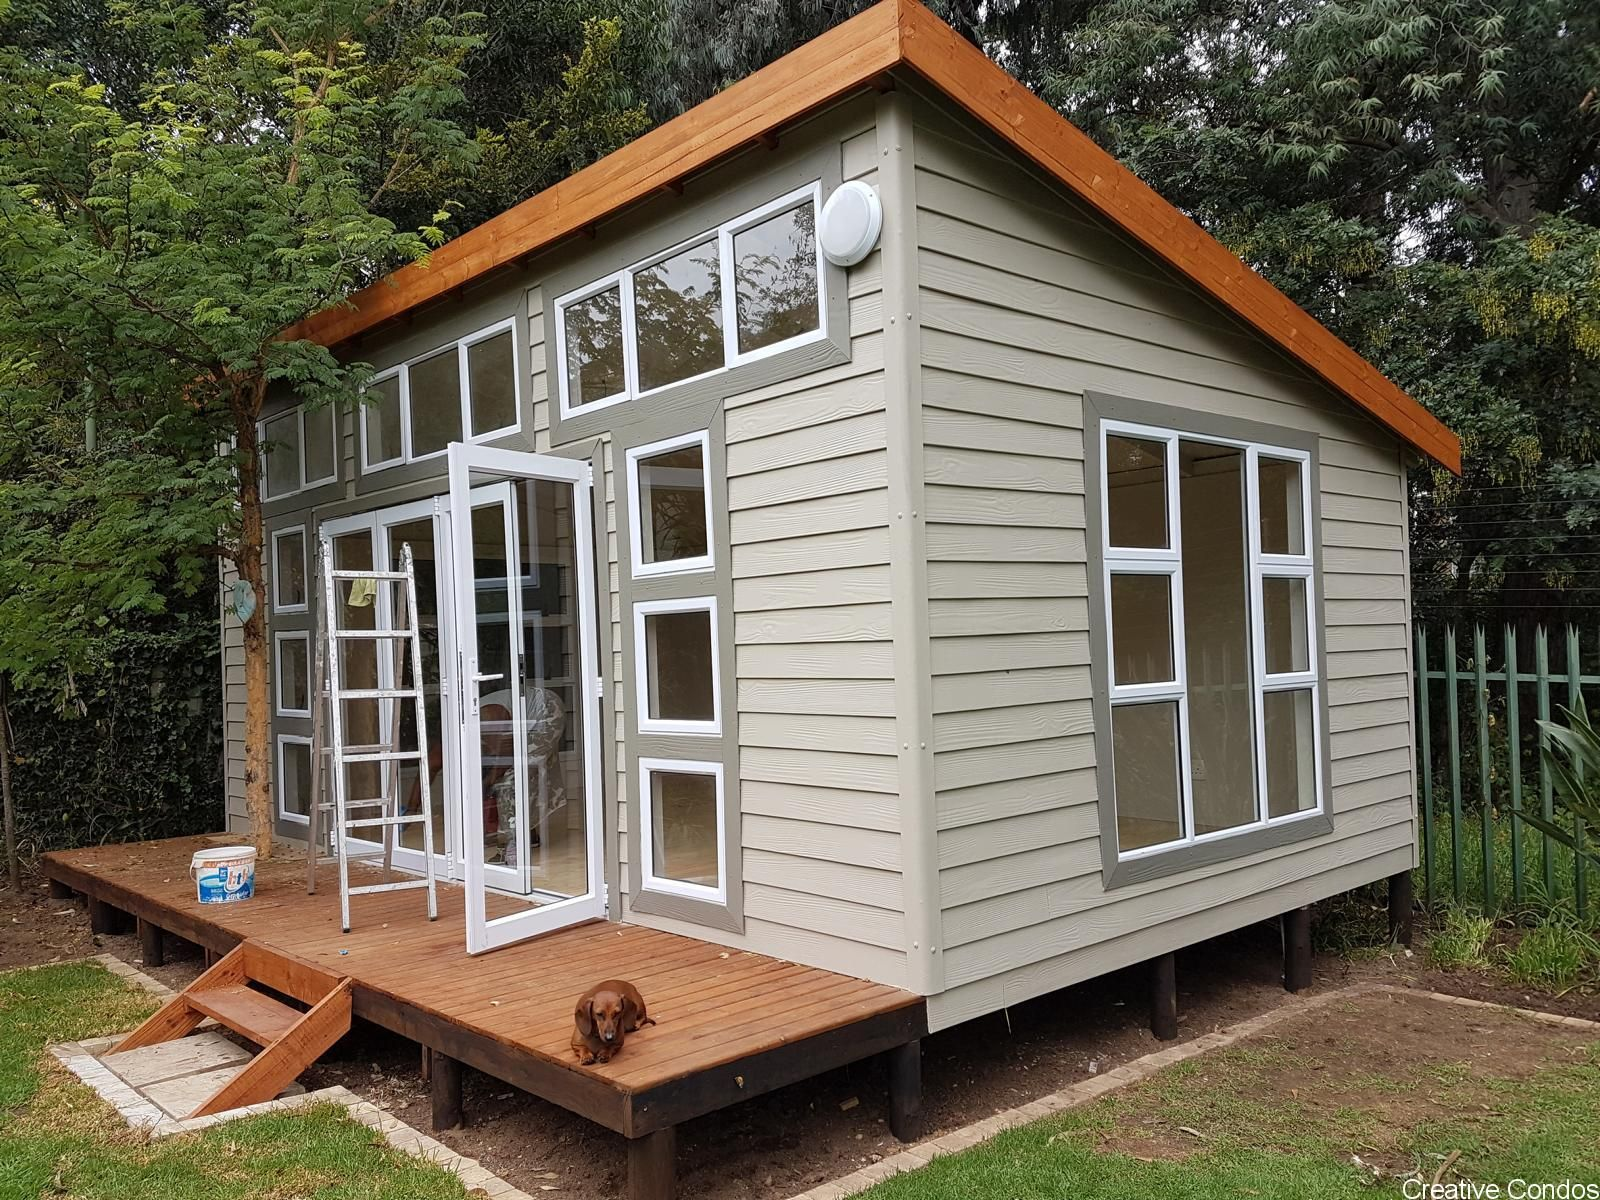 Nutec Wendy Houses Pretoria And Cape Town Nutec Houses Wendy House Small House